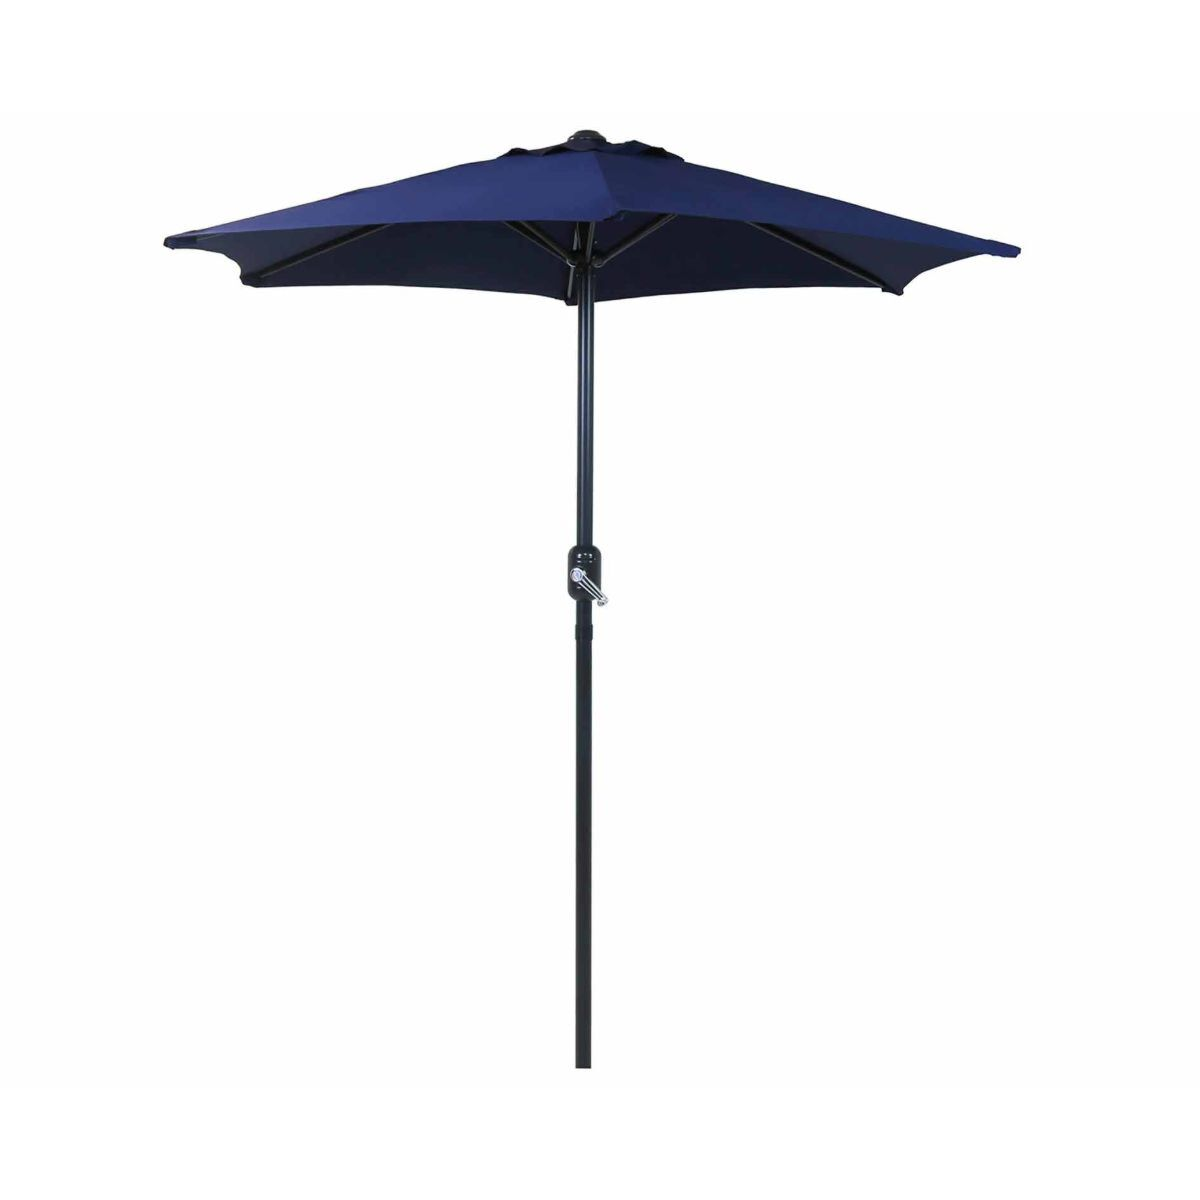 Charles Bentley 2M Market Parasol with Crank Function - Blue